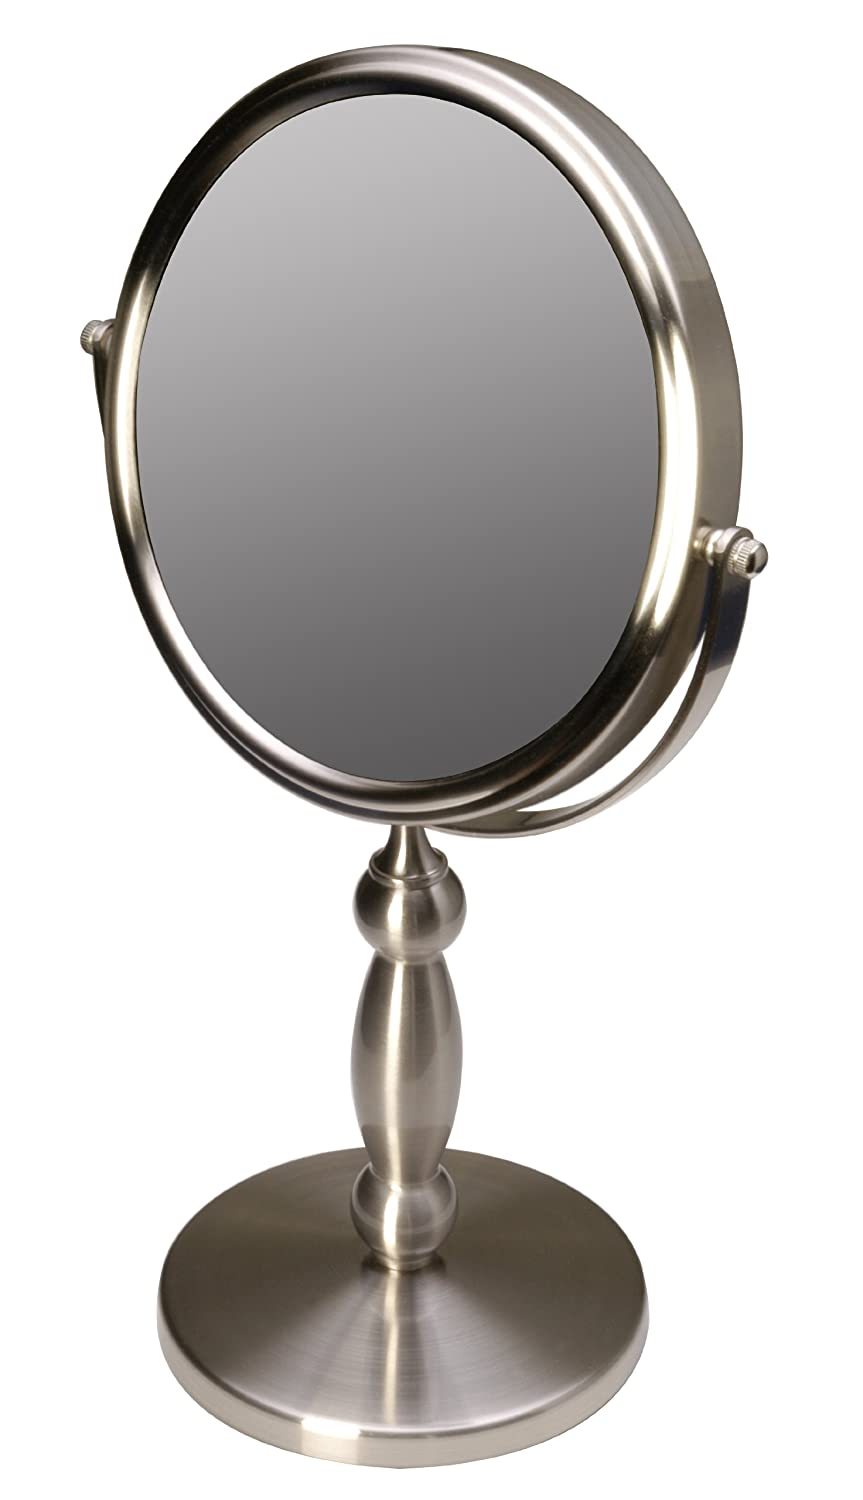 Floxite 15X Non-Lighted Tabletop Makeup Mirror Reviews